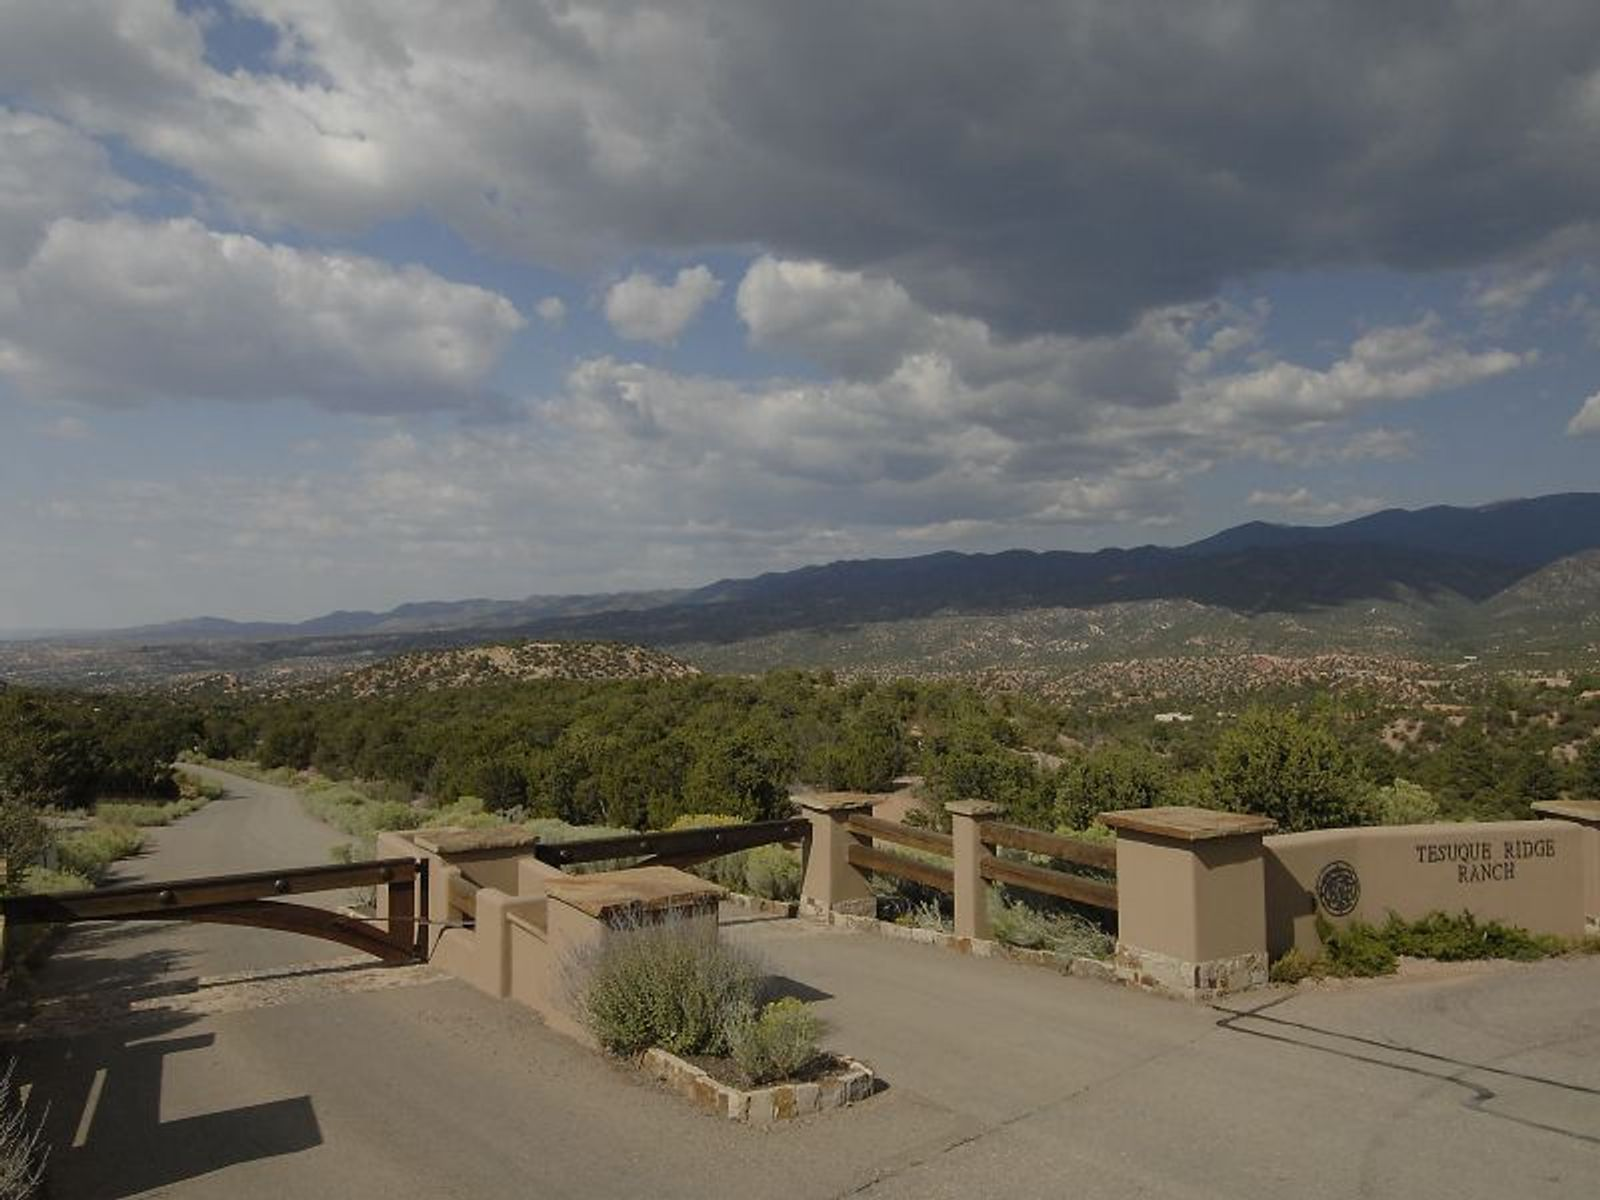 Lot 2 Tesuque Ridge Ranch, Santa Fe NM Acreage / Lots - Santa Fe Real Estate